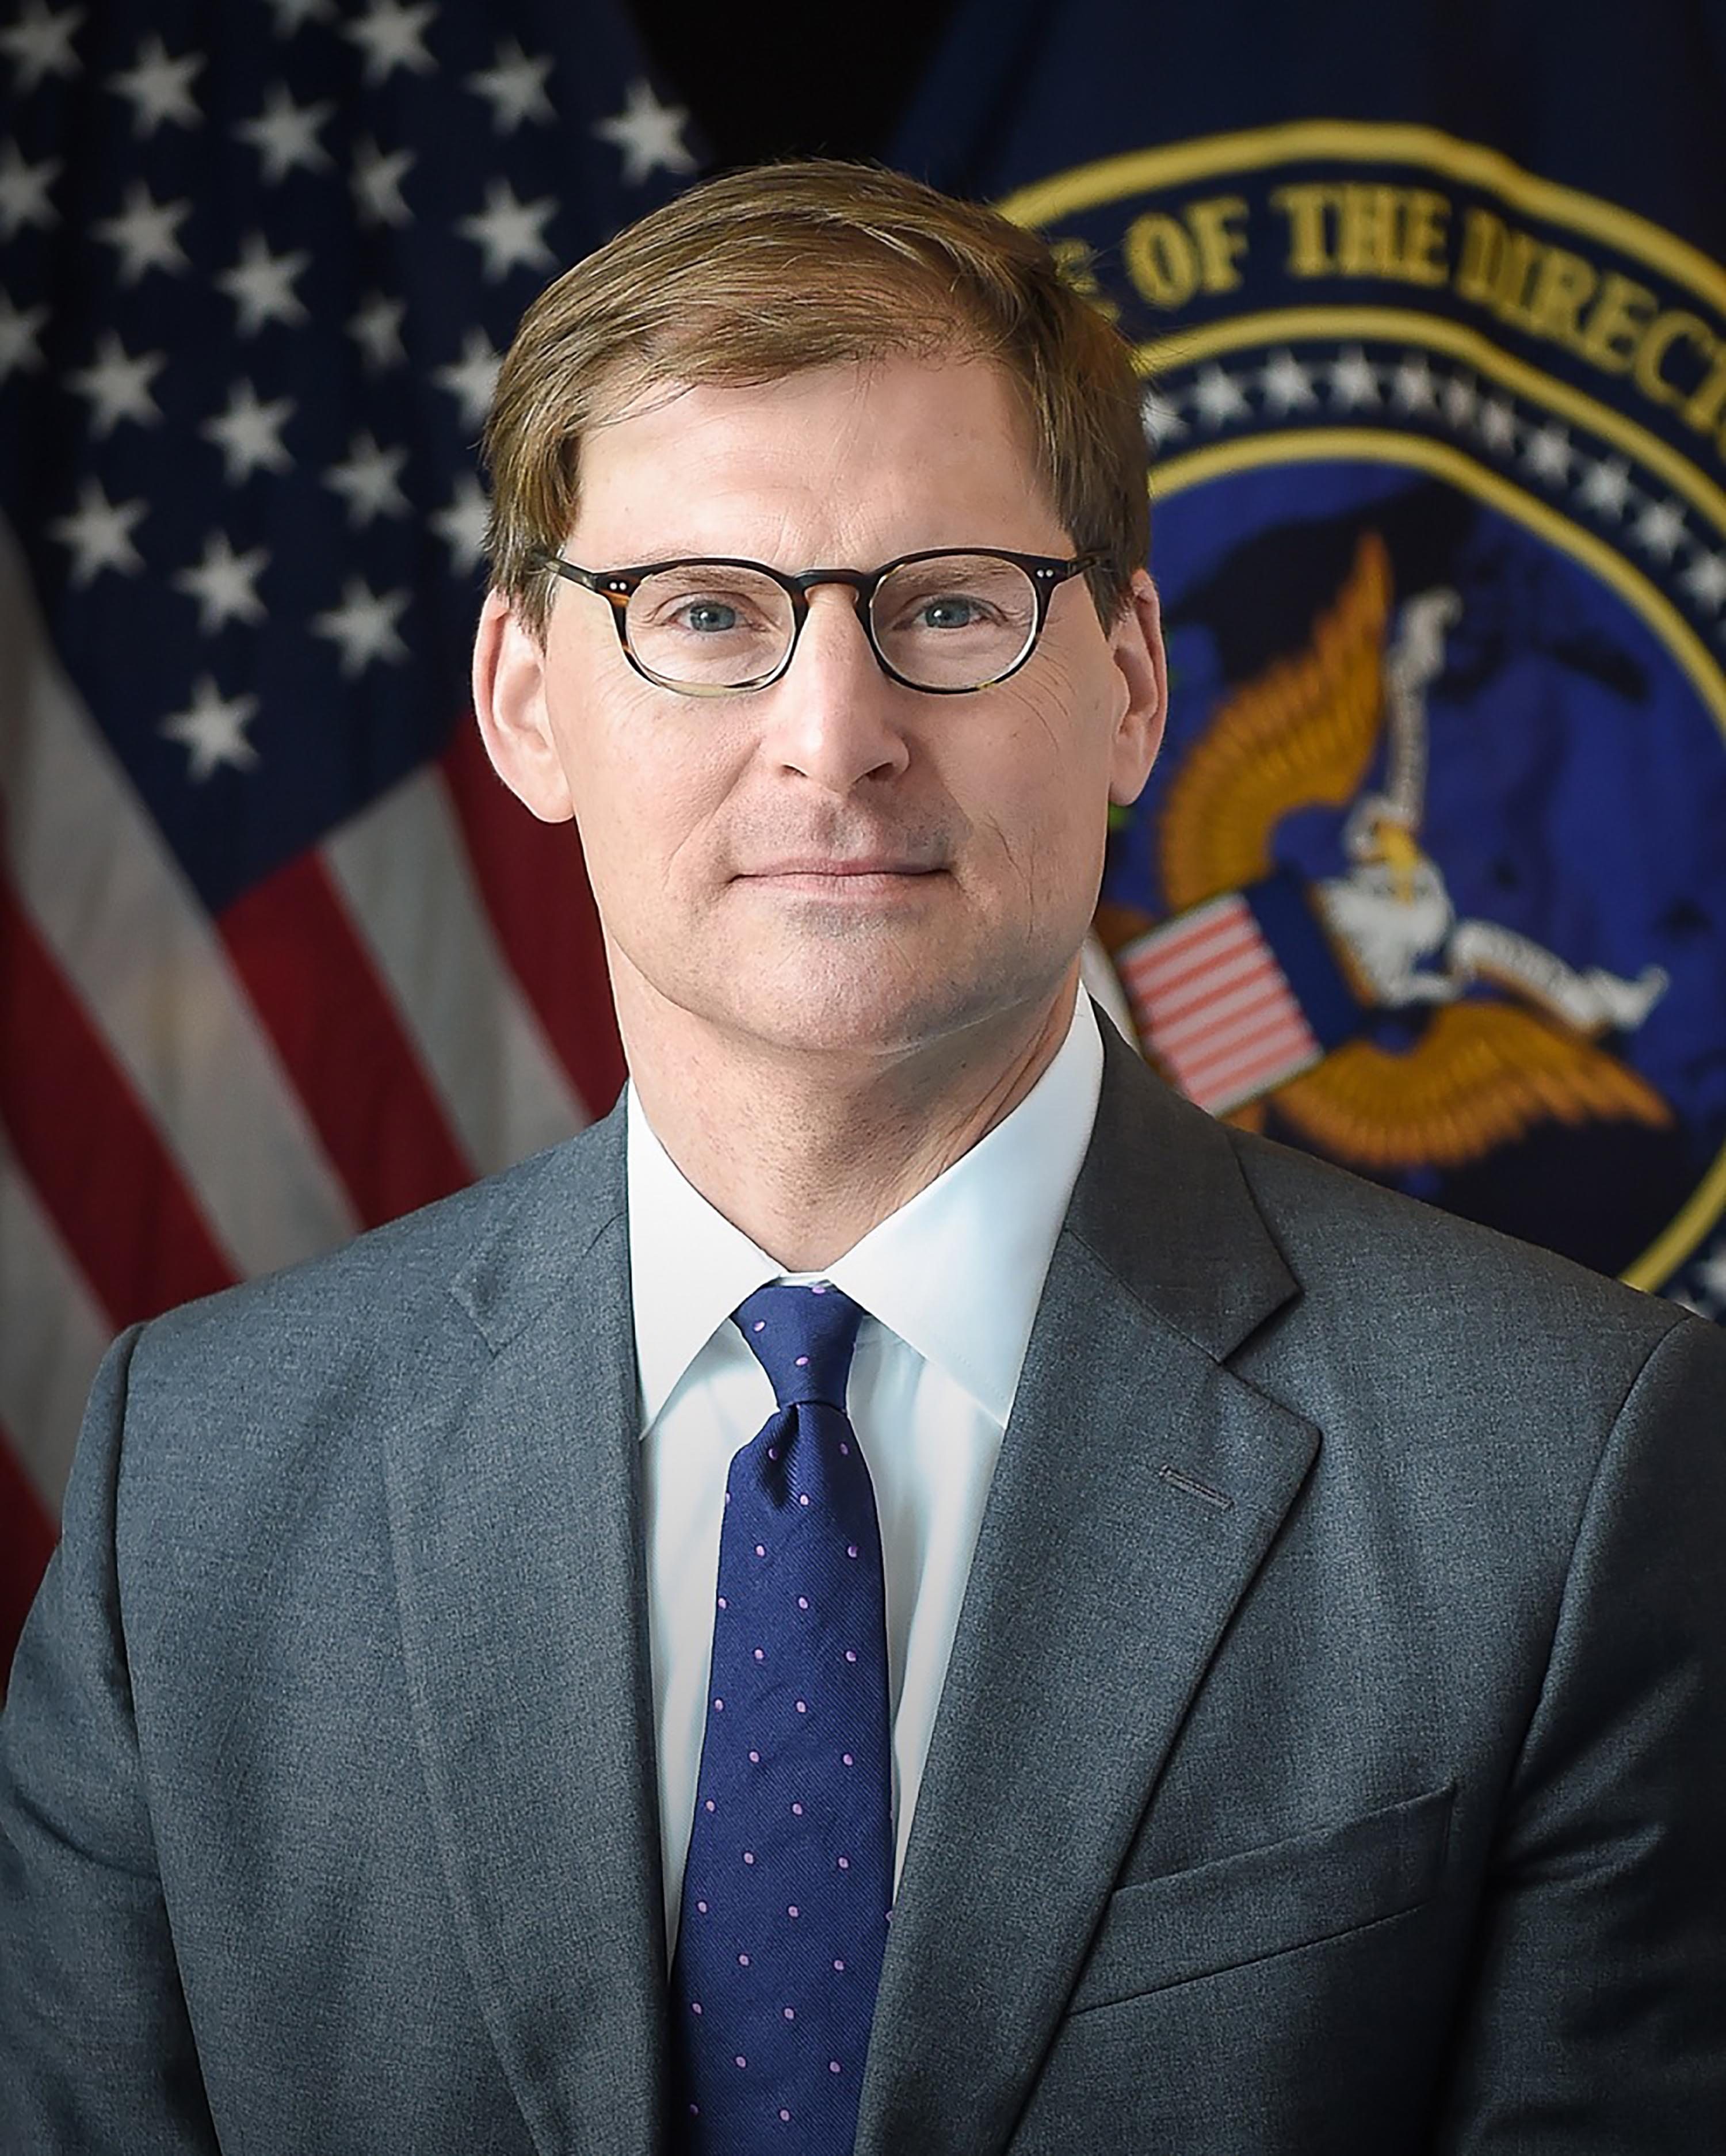 Intel lawyer who initially blocked Ukraine whistleblower complaint from Congress set to resign